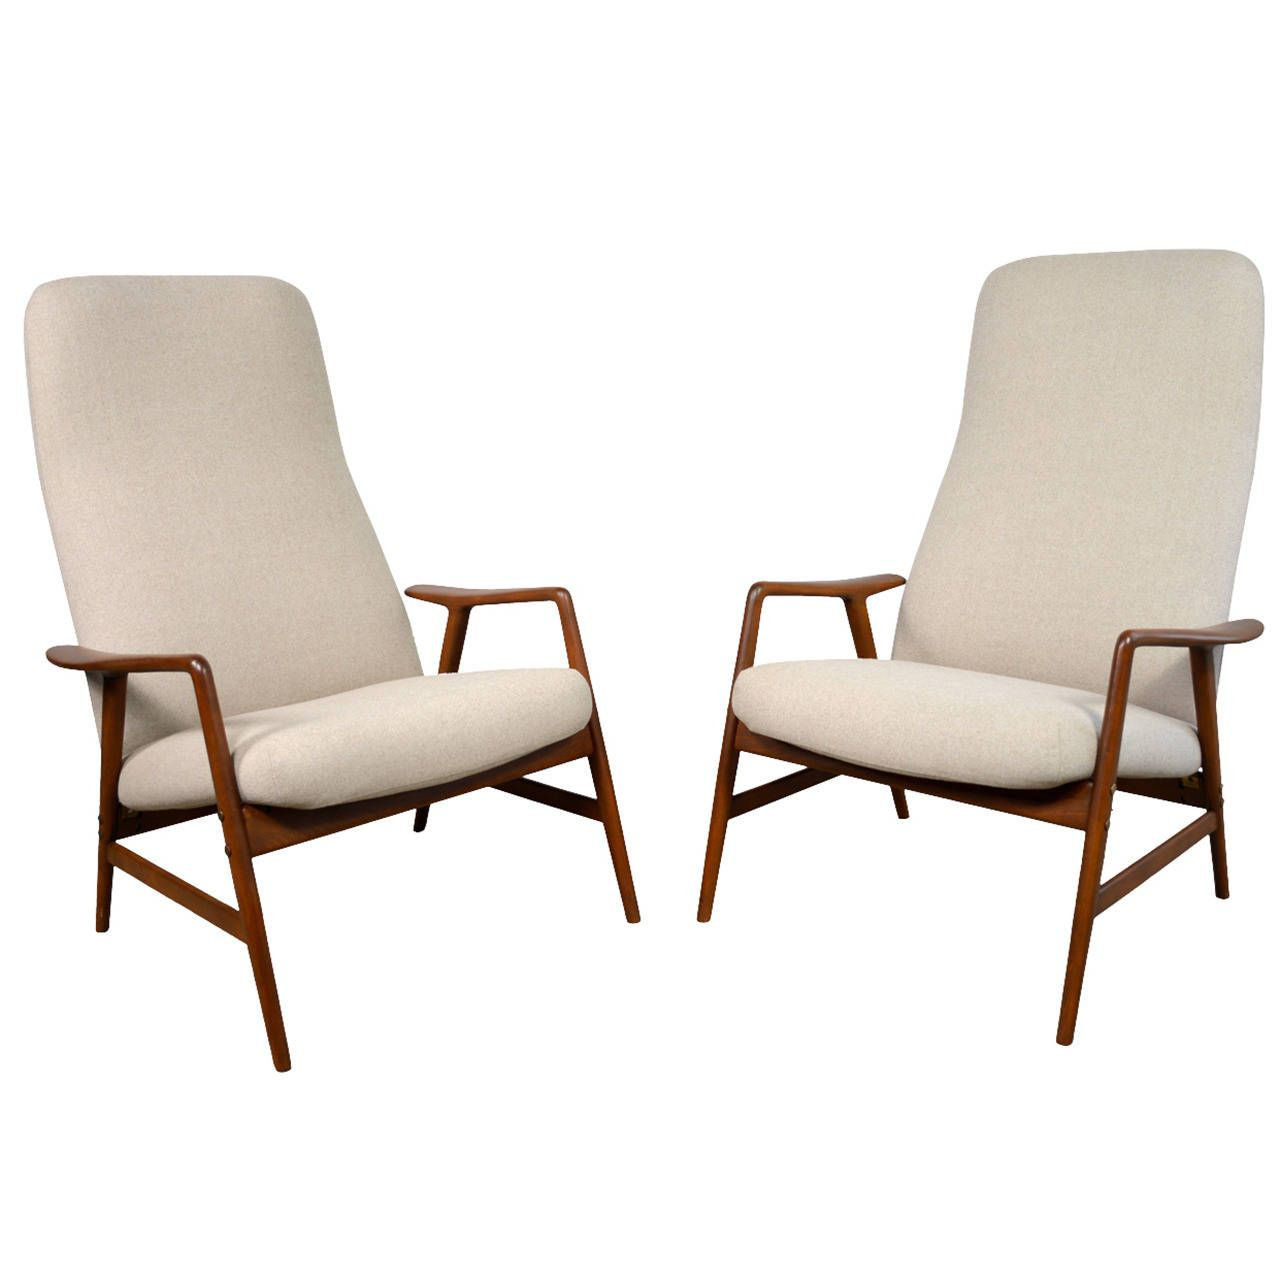 Alf Svensson Pair Of Danish Modern Reclining Lounge Chairs For Dux